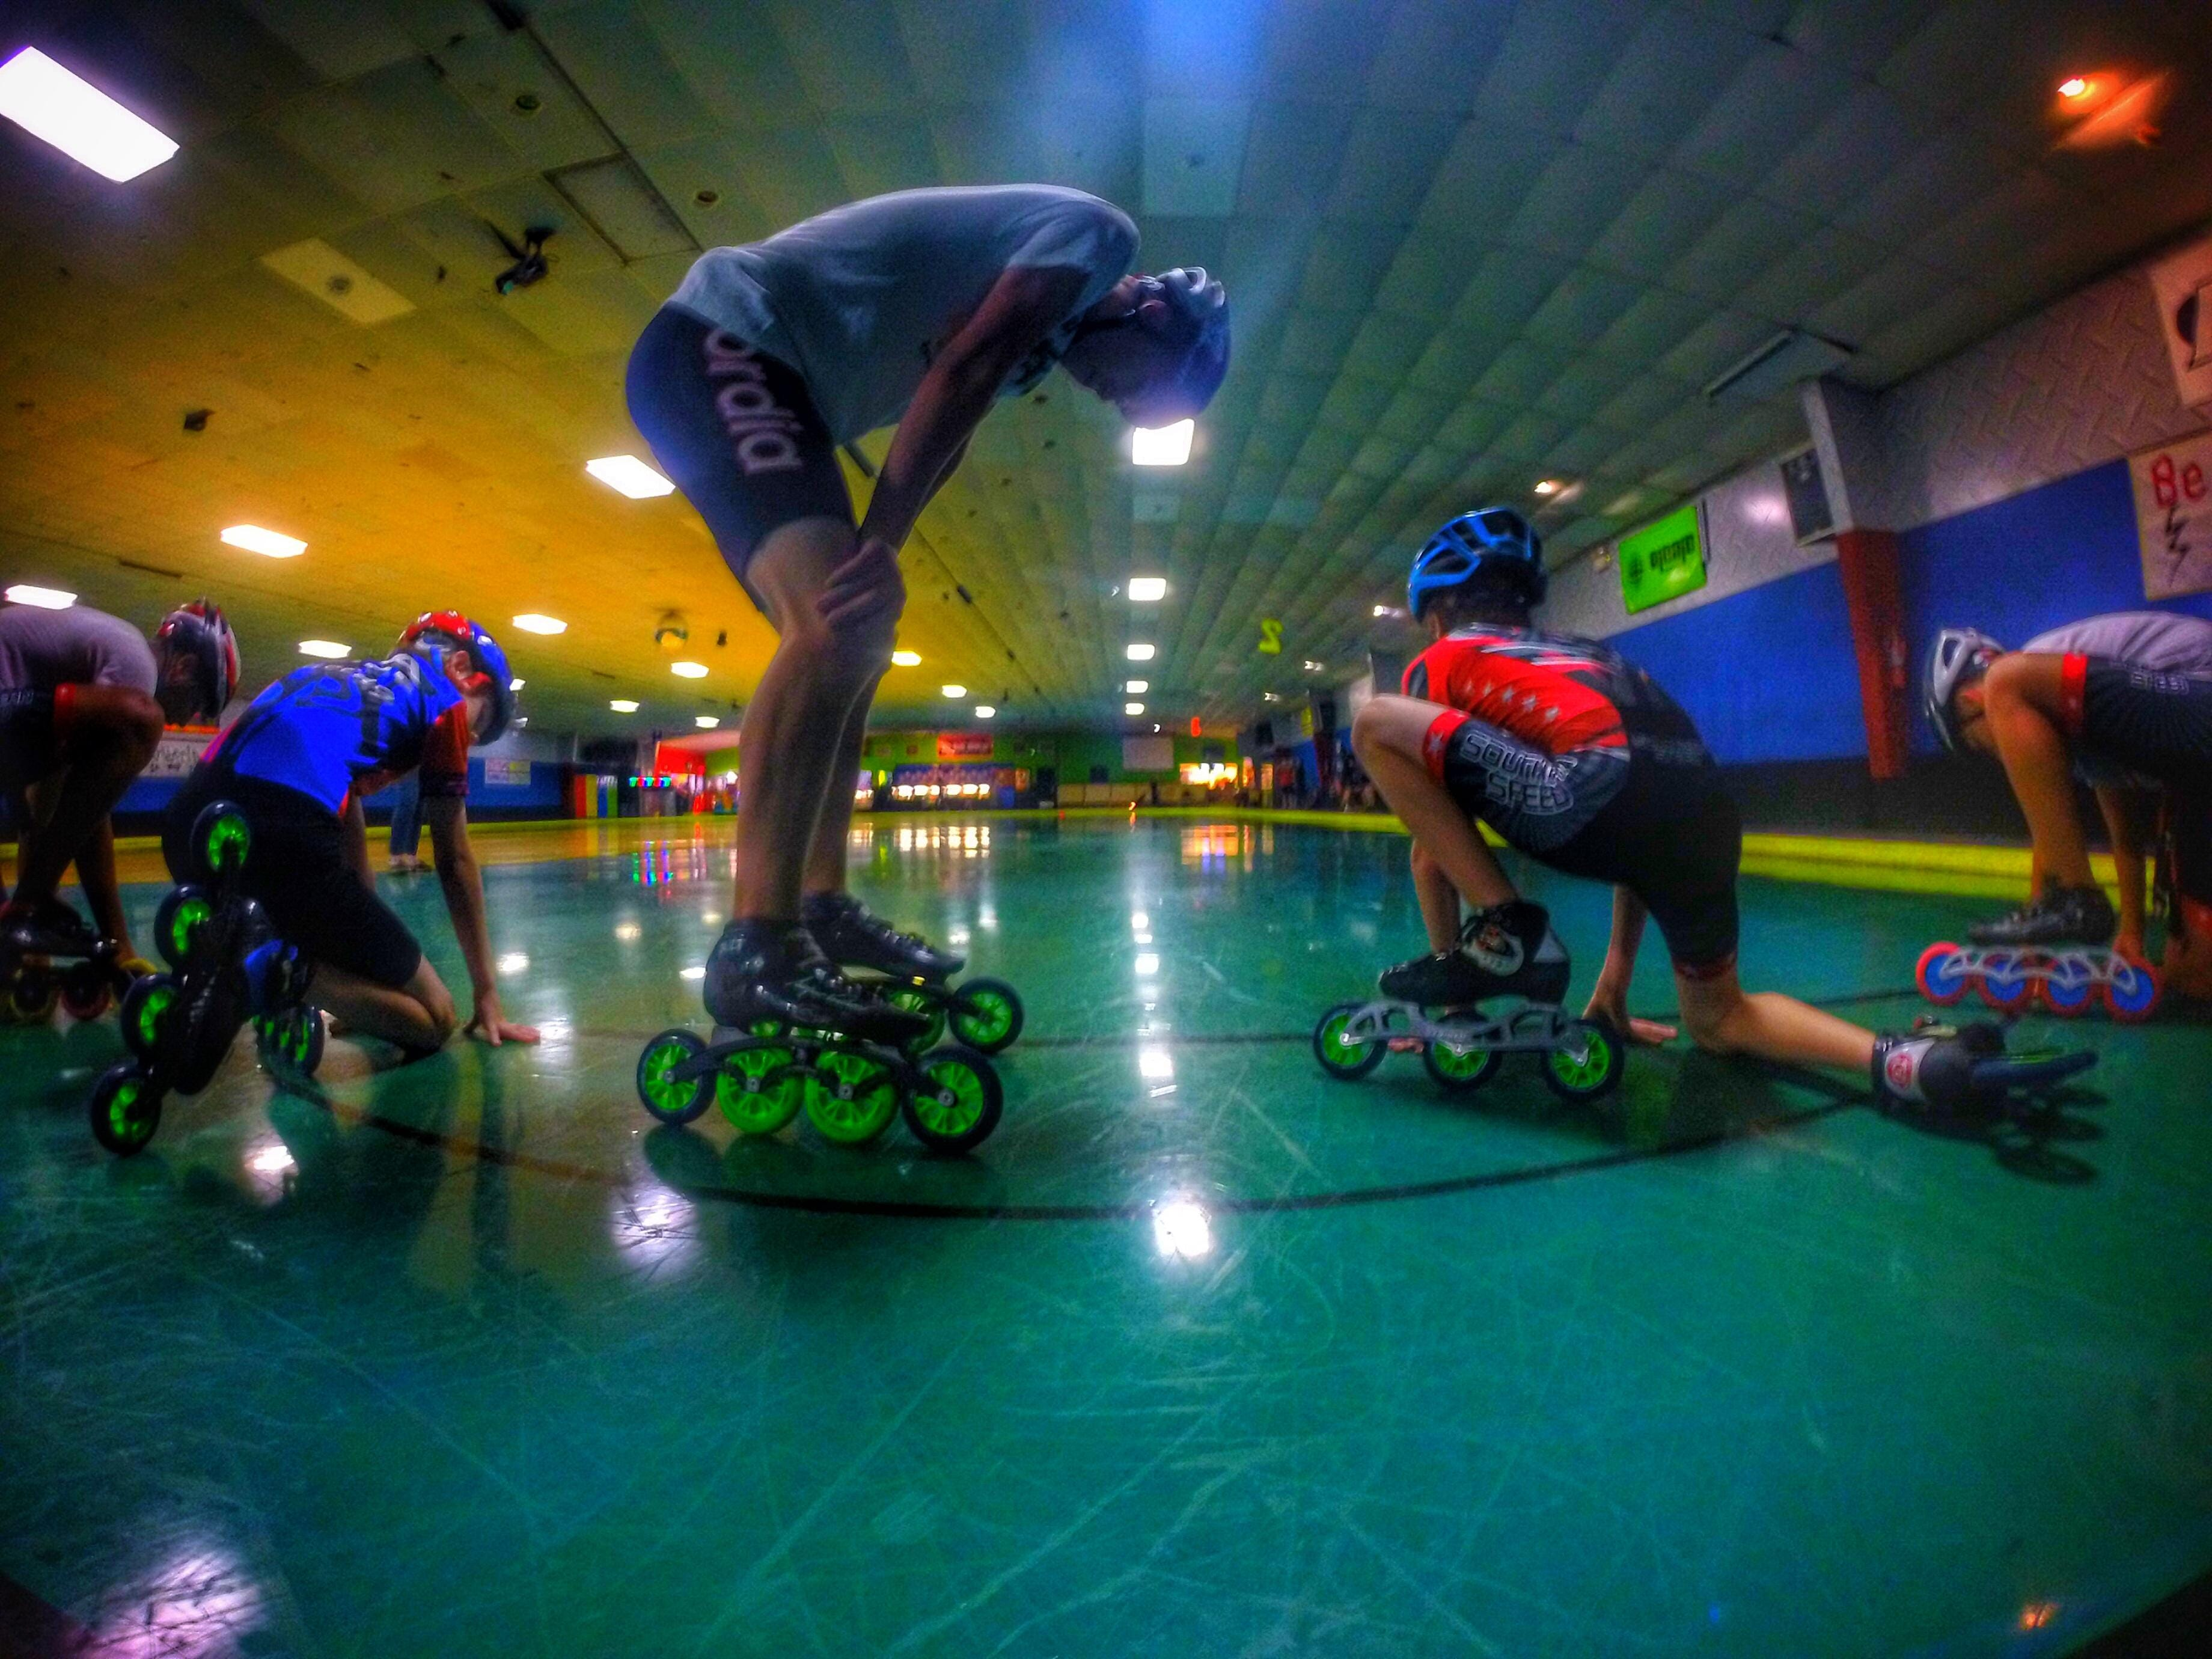 Usa roller skating rink queens - Southern Speed Inline Speed Skater Joey Bisping 15 Prepares To Run A Final Start